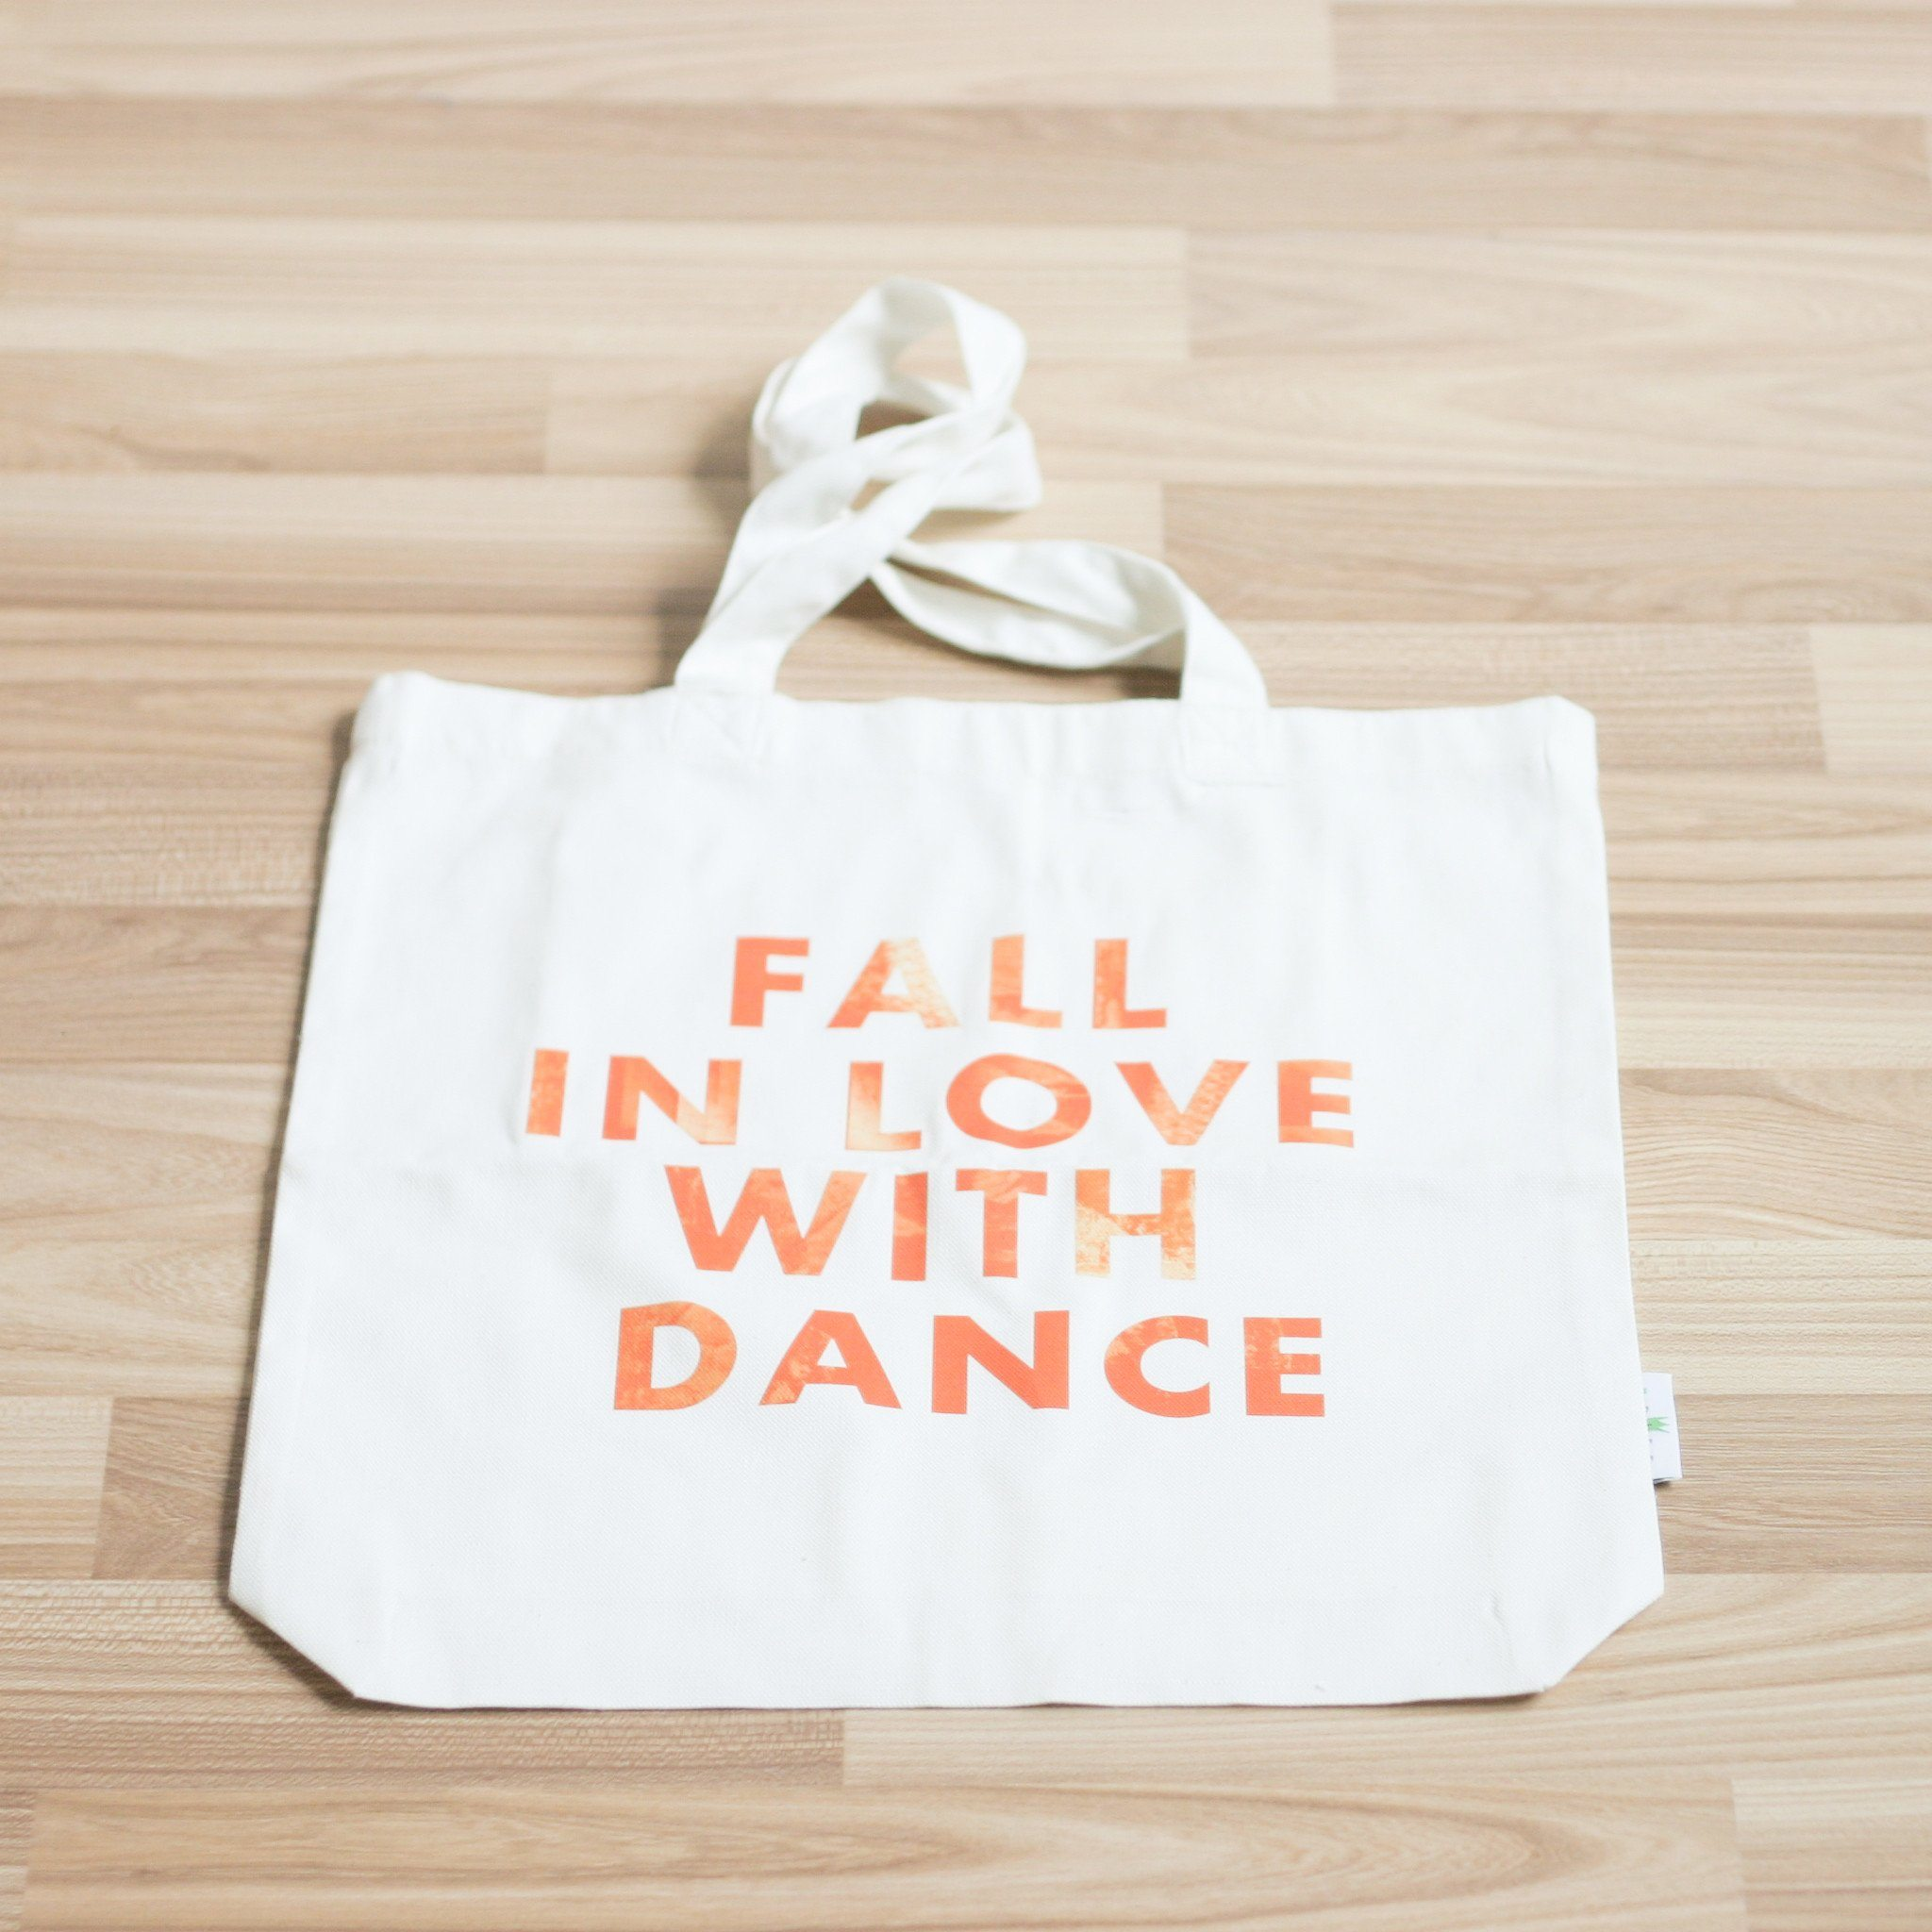 Fall in love with dance tote bag - Tote Bags - B-Diff - Naiise